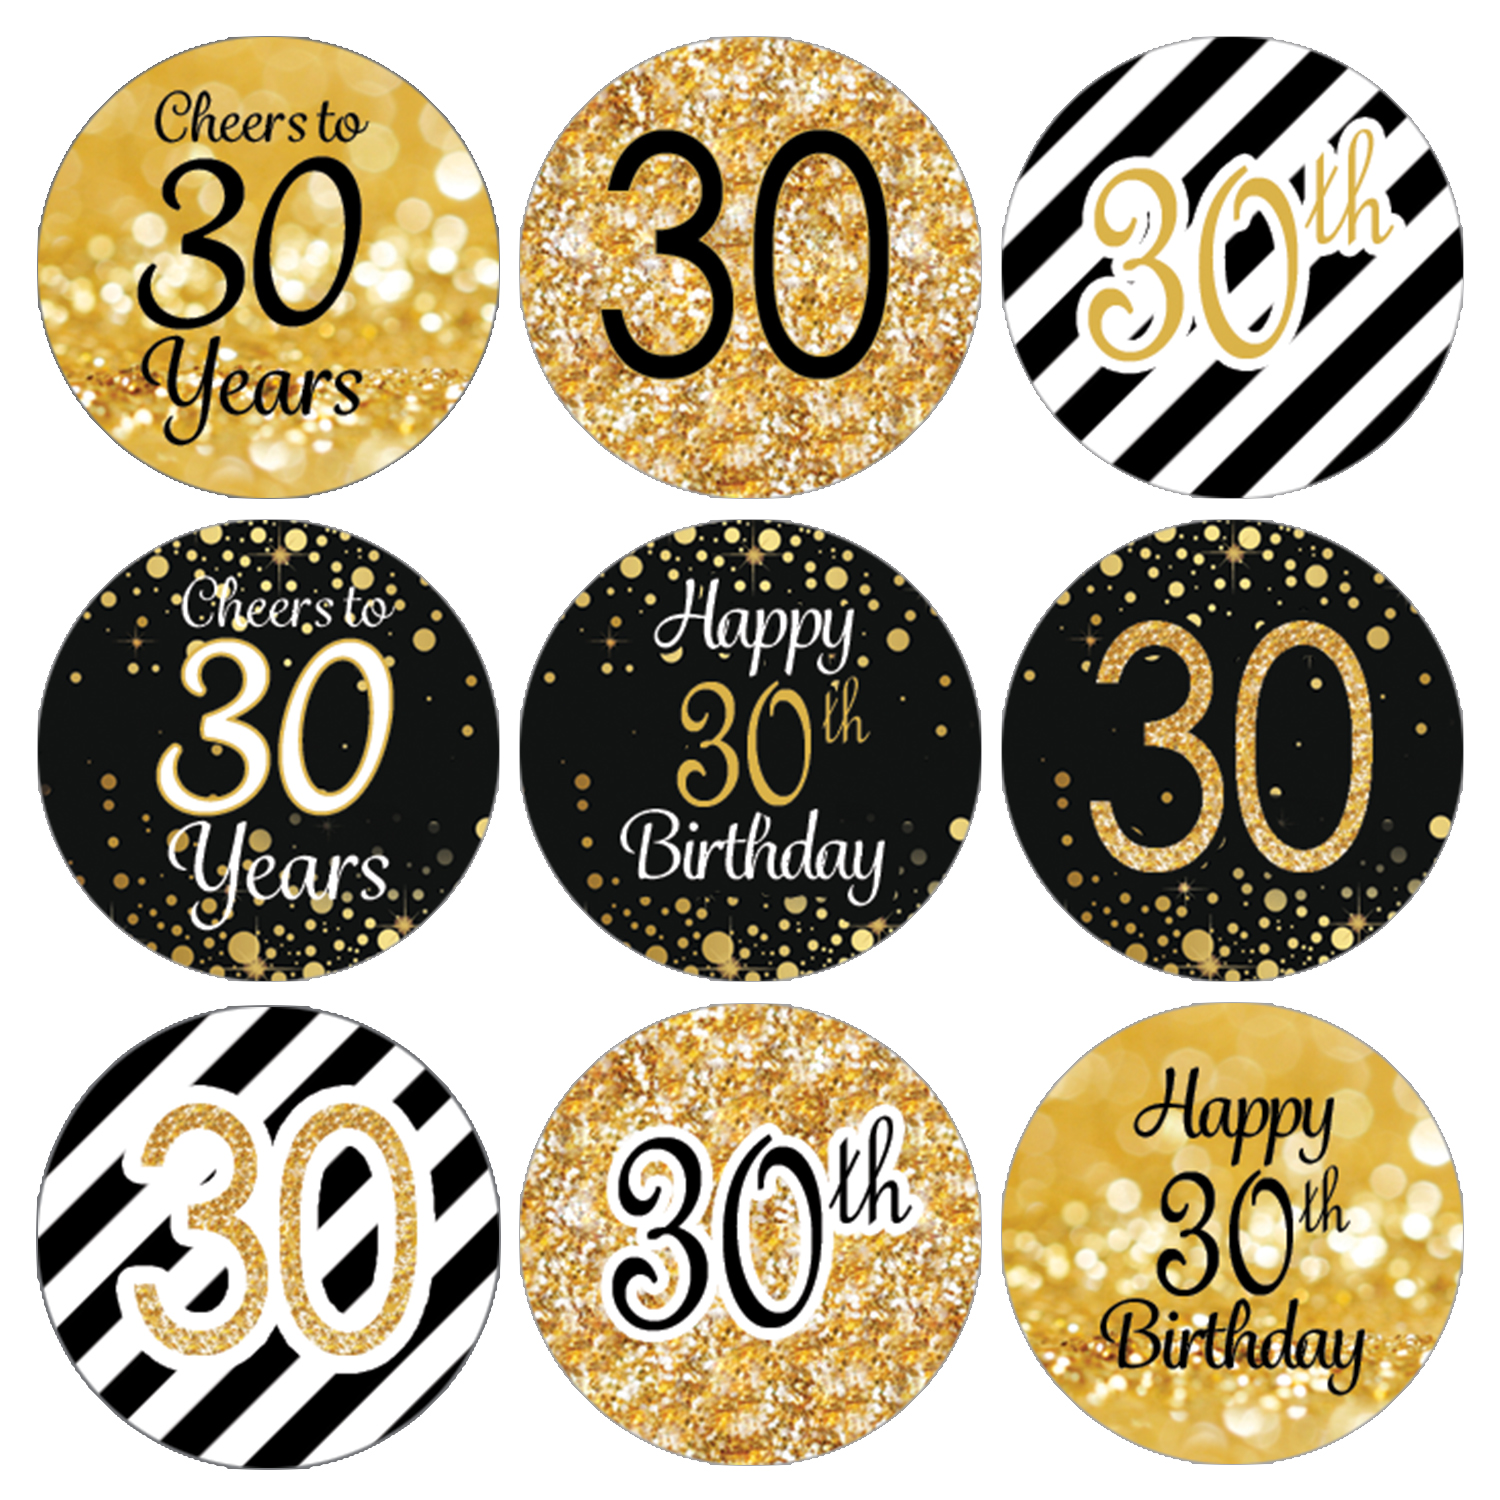 30th Birthday Party Favor Stickers   216 Labels   Black and Gold Decoration Supplies